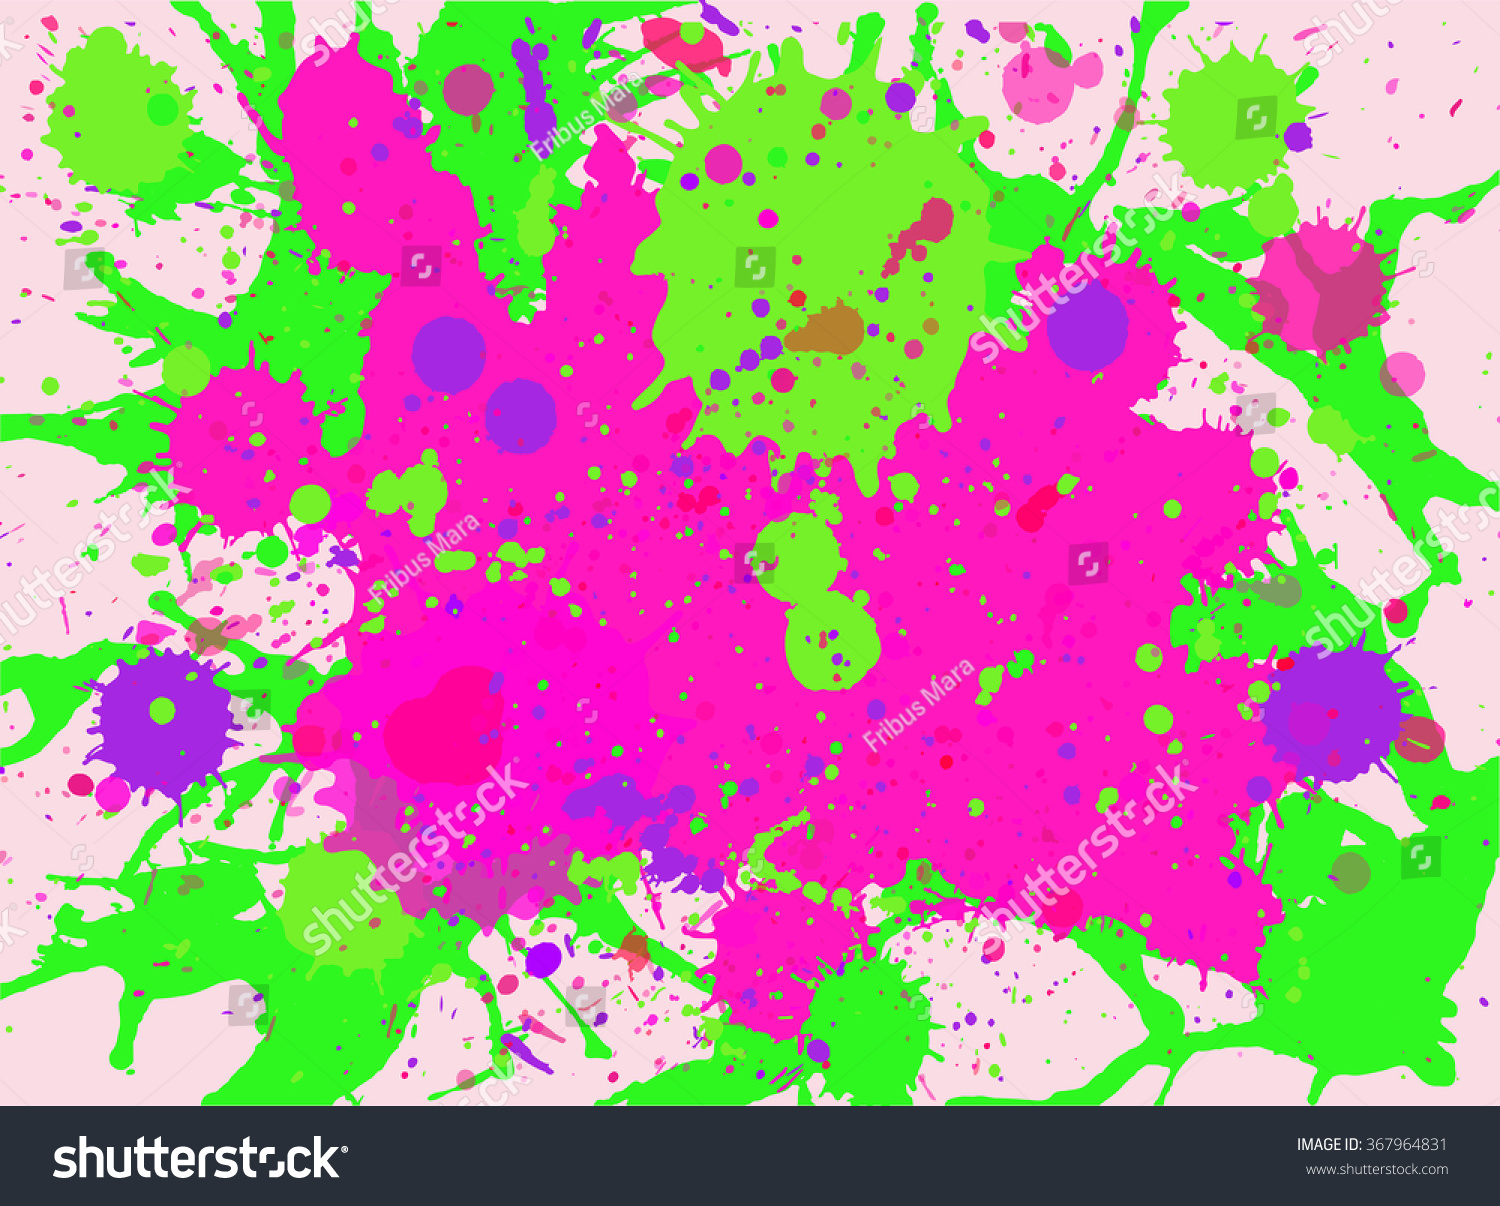 Bright Pink Paint Vibrant Bright Pink Neon Green Watercolor Stock Vector 367964831